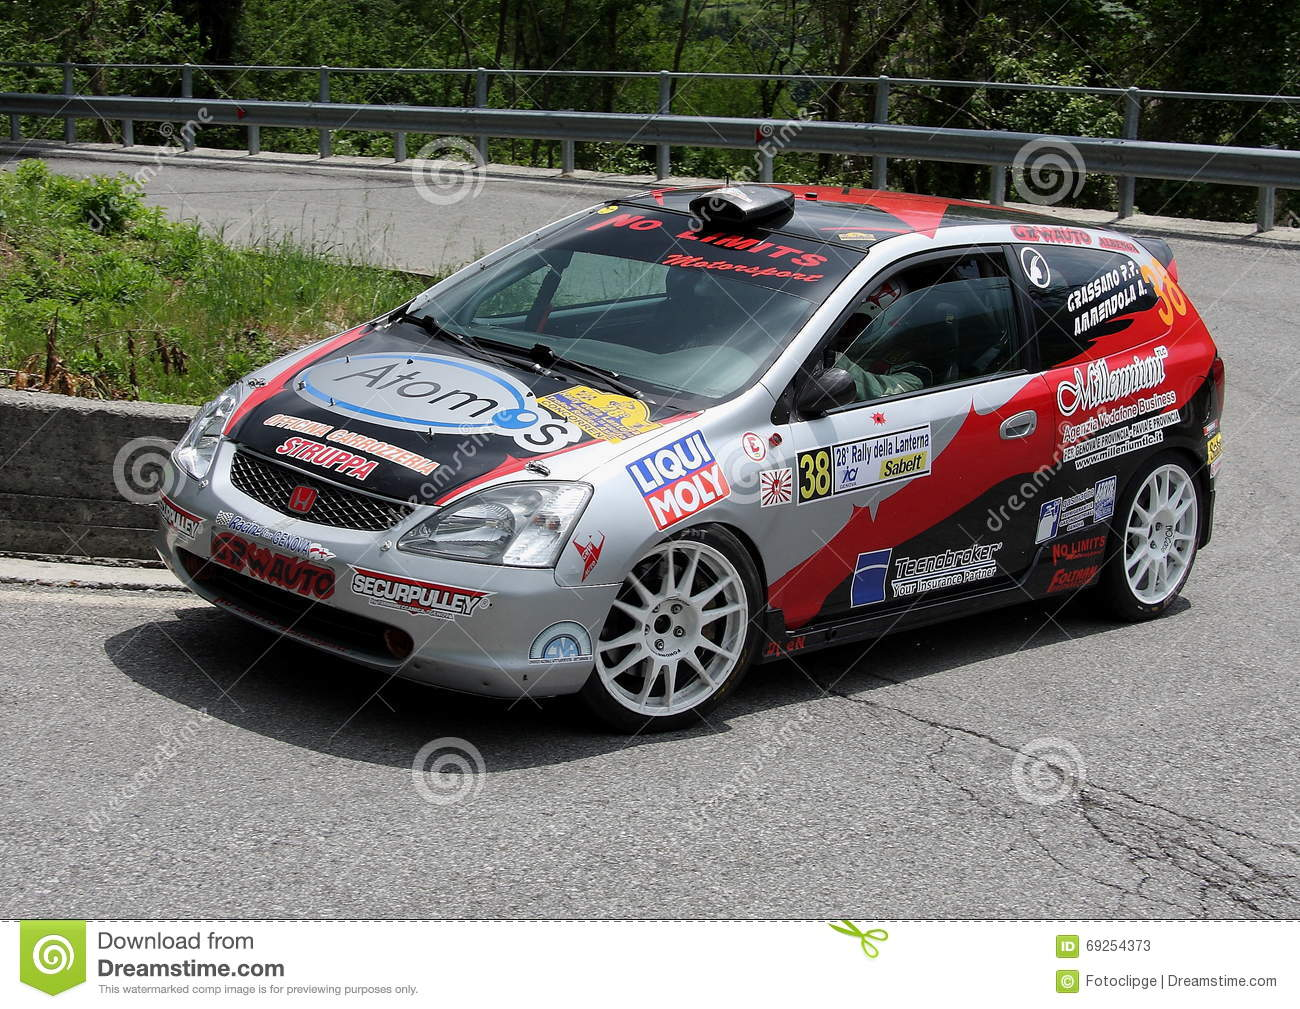 honda civic rally car editorial stock photo image of